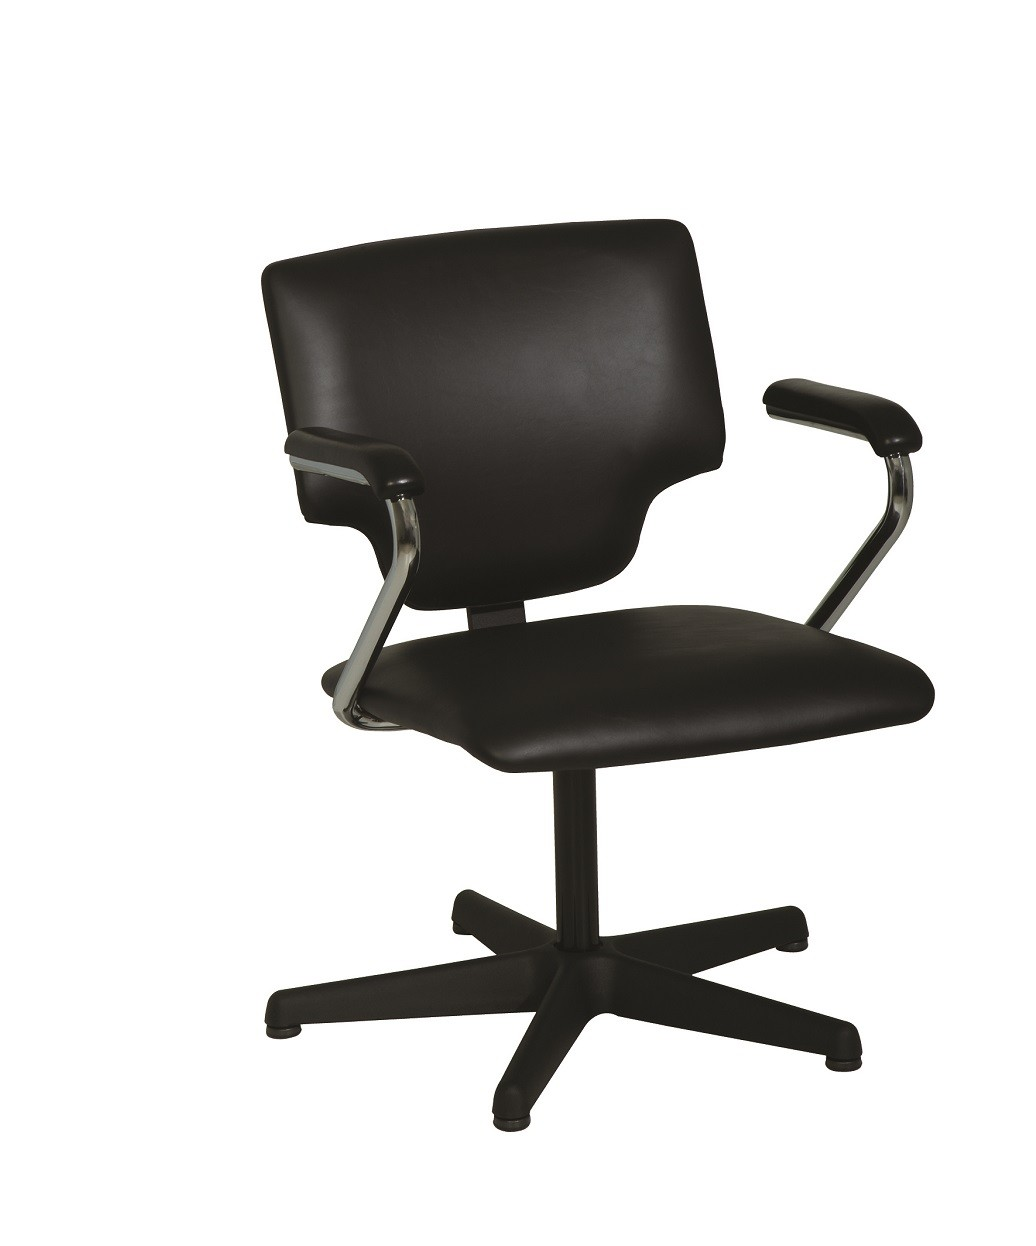 Belvedere BL84 Belle Shampoo Chair